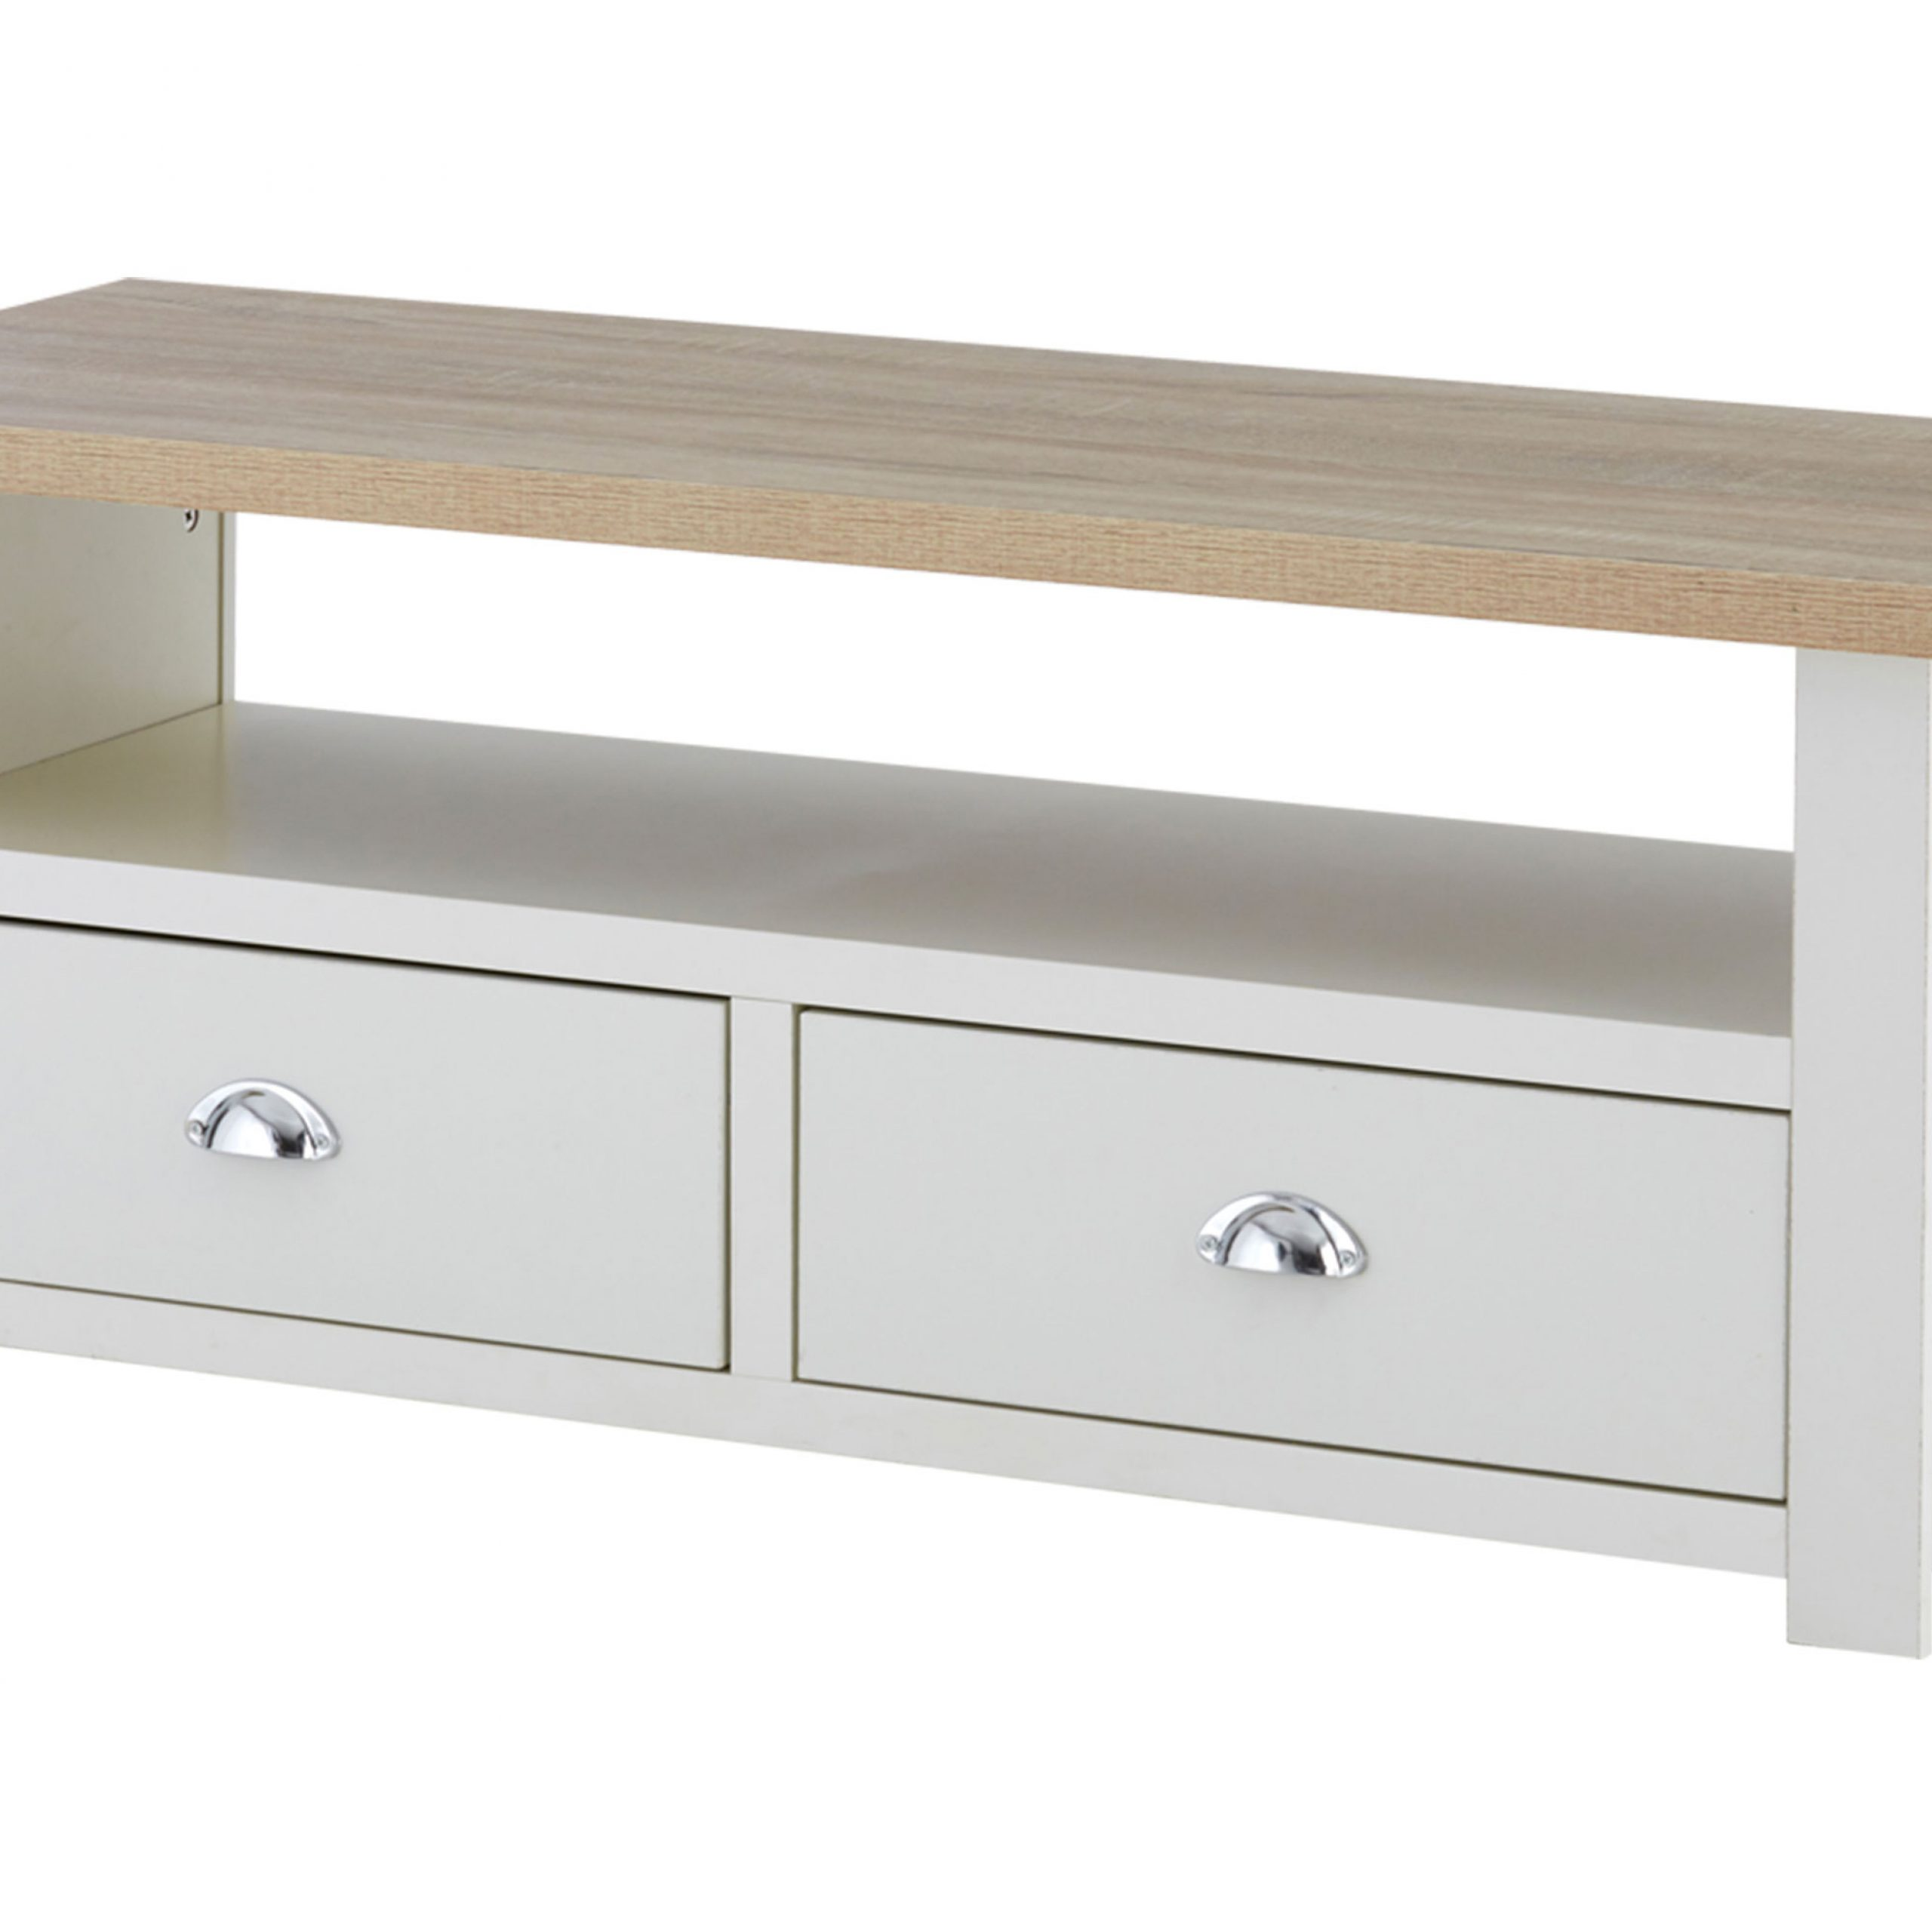 St Ives 2 Drawer Media Tv Unit Stand Oak Veneer White Throughout Scandi 2 Drawer White Tv Media Unit Stands (View 4 of 20)